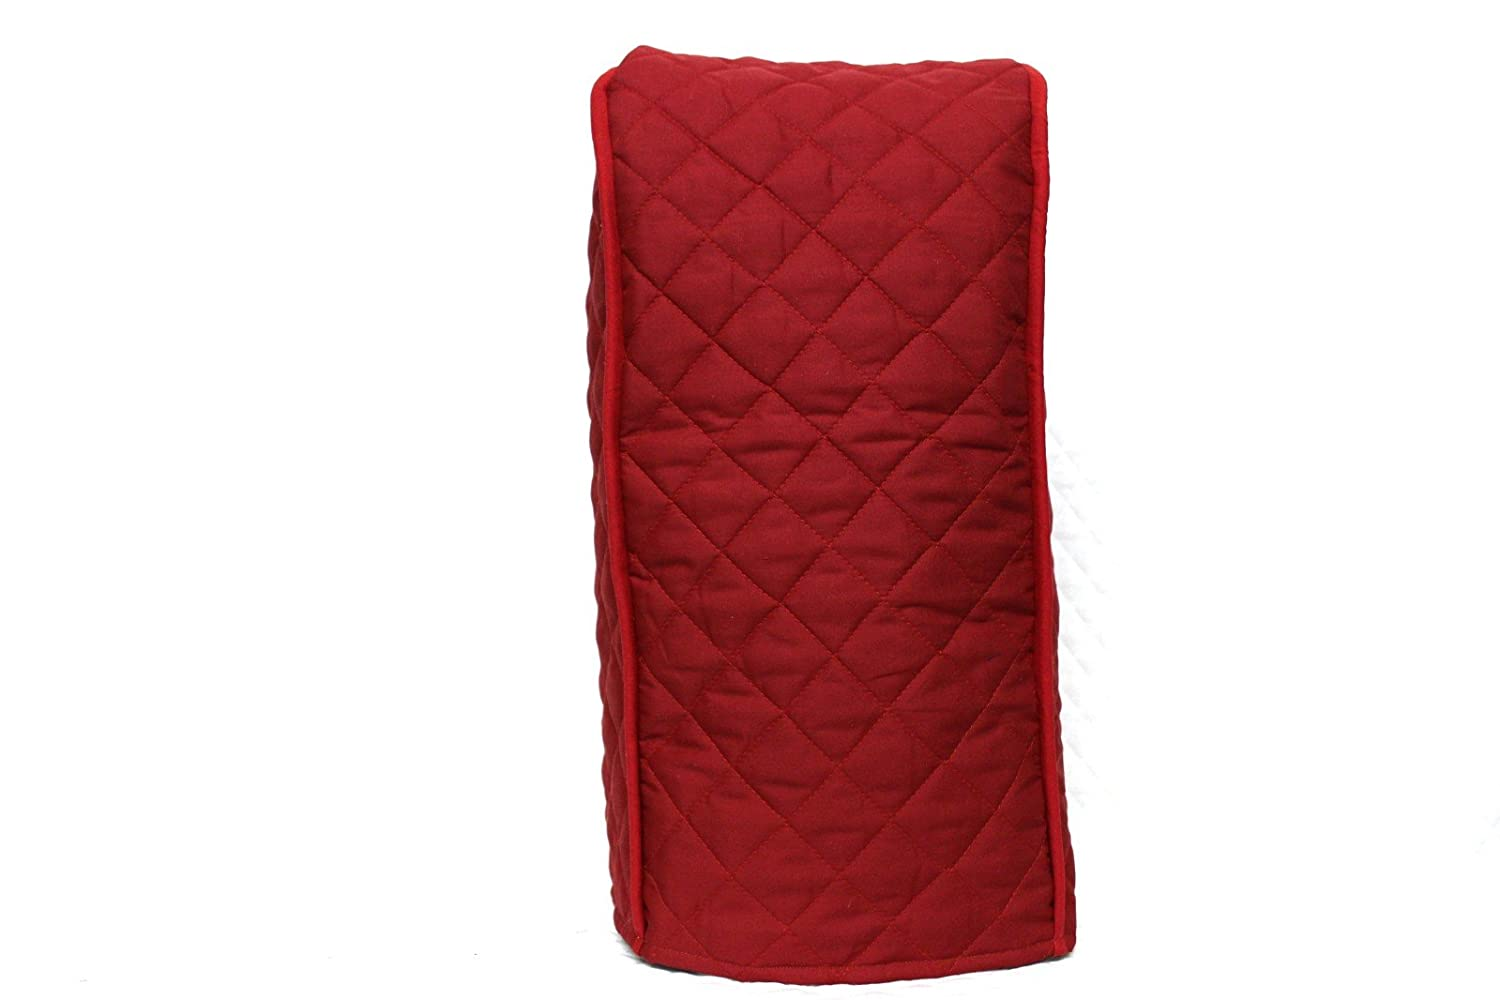 Simple Home Inspirations Ninja Blender Cover - Quilted Double Faced Cotton, Red